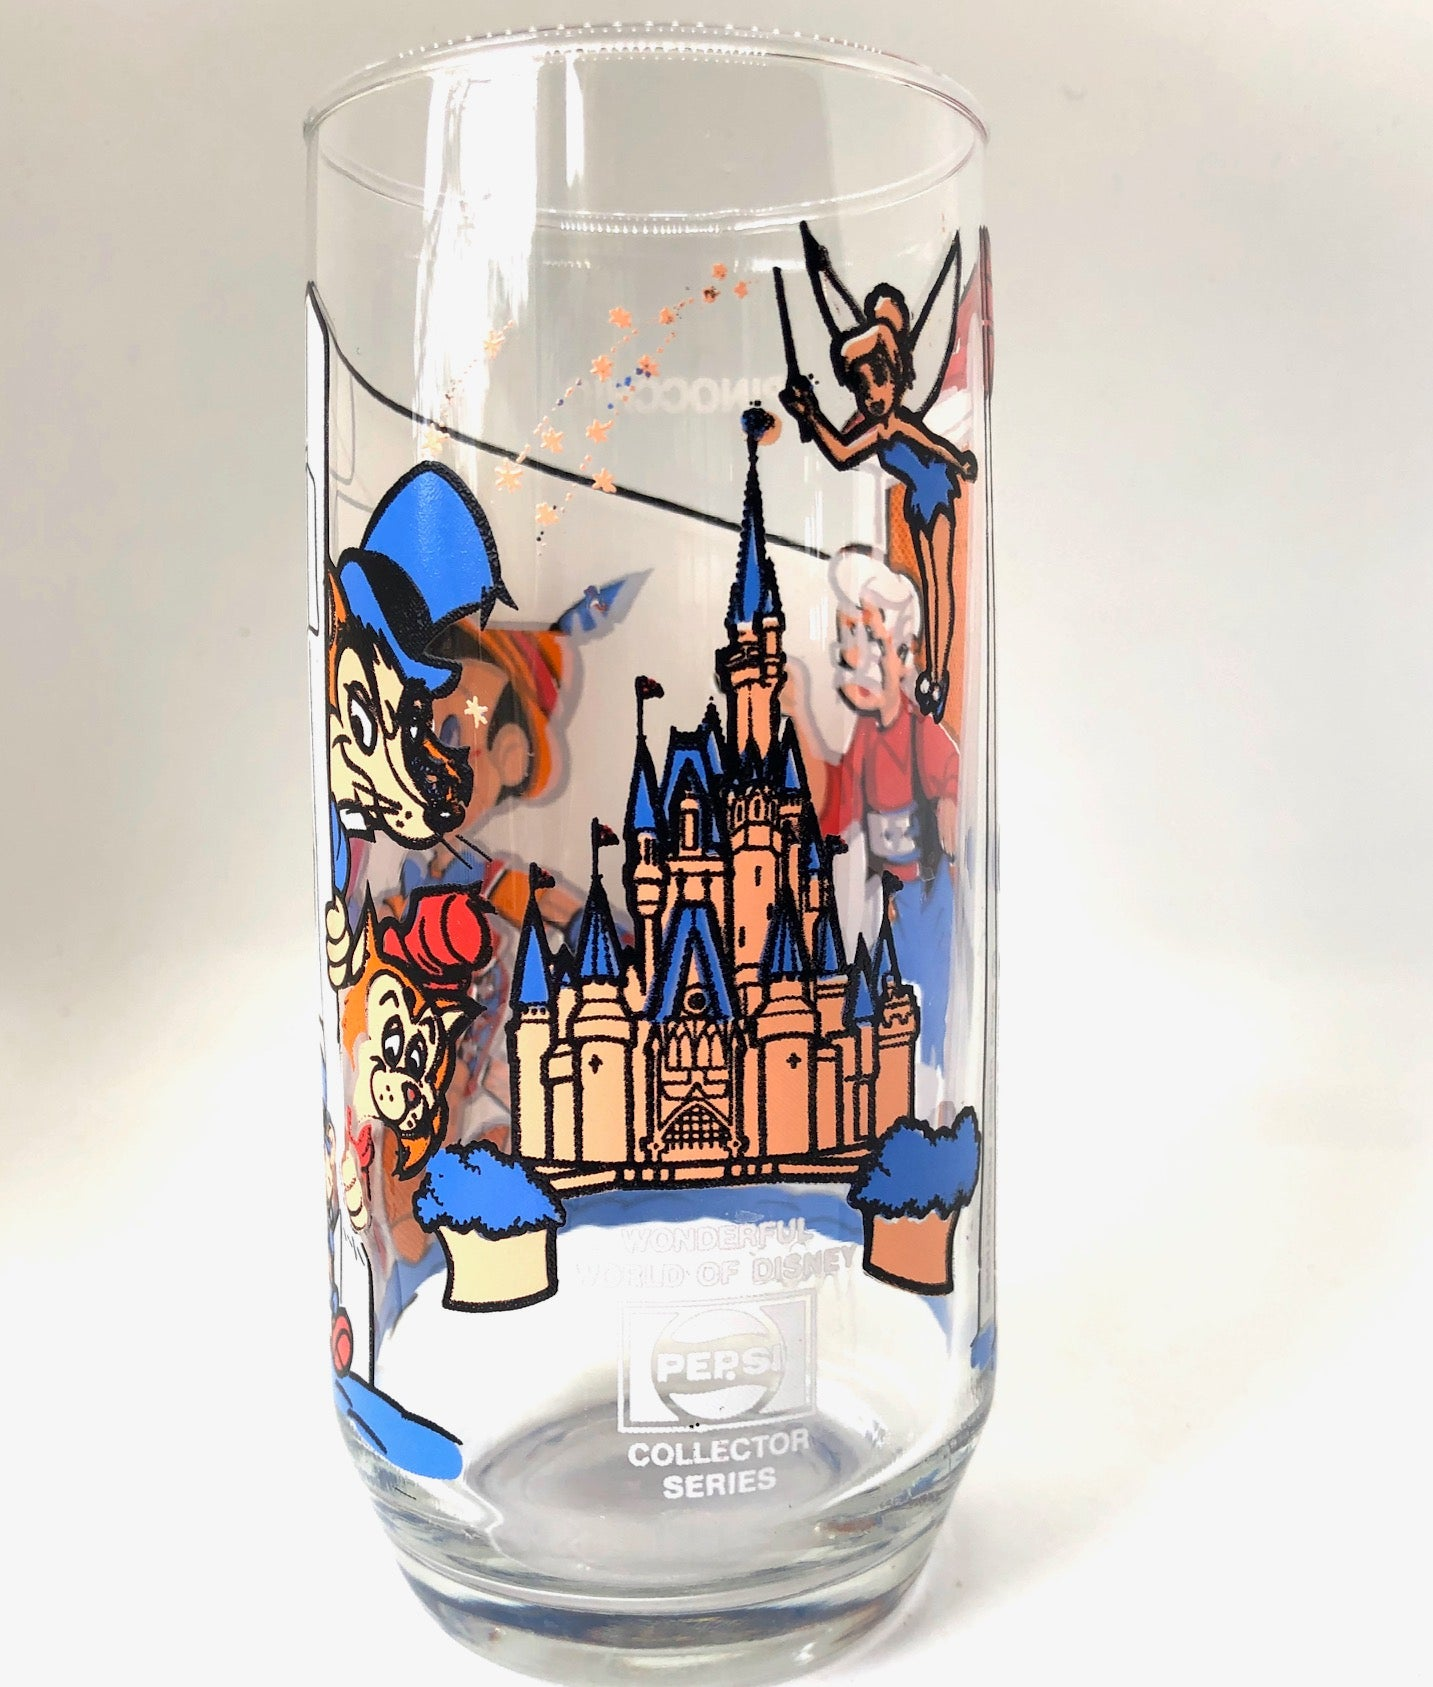 Pepsi Collectors Series Disney Vintage Drinking Glasses (Set of 6)